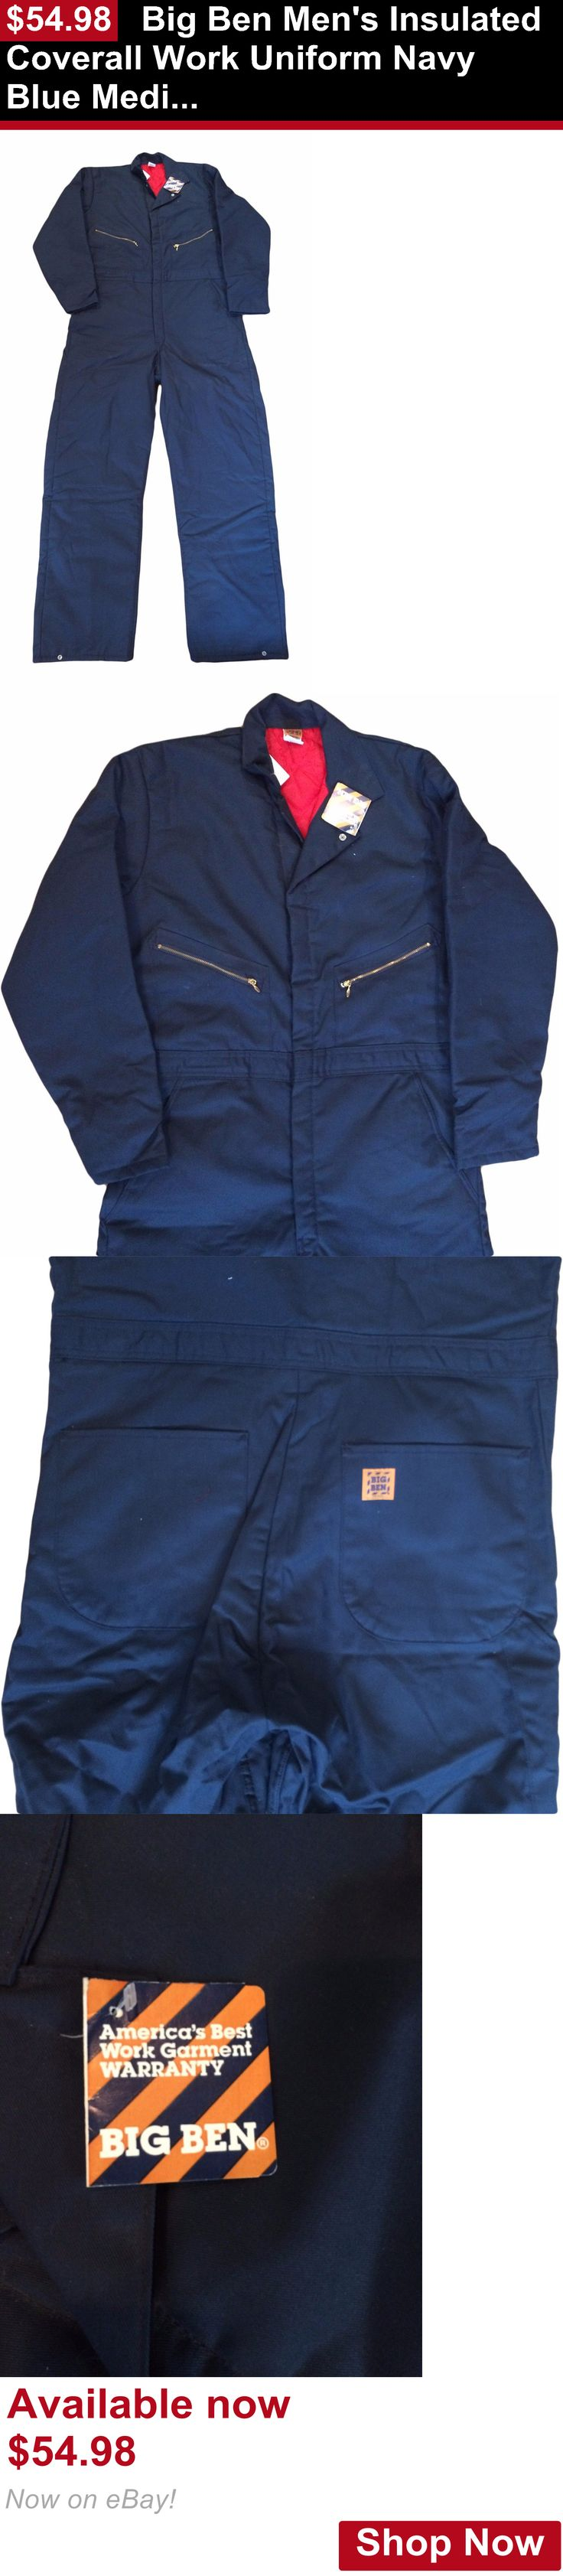 Adult uniforms: Big Ben Mens Insulated Coverall Work Uniform Navy Blue Medium - Long Irregular BUY IT NOW ONLY: $54.98